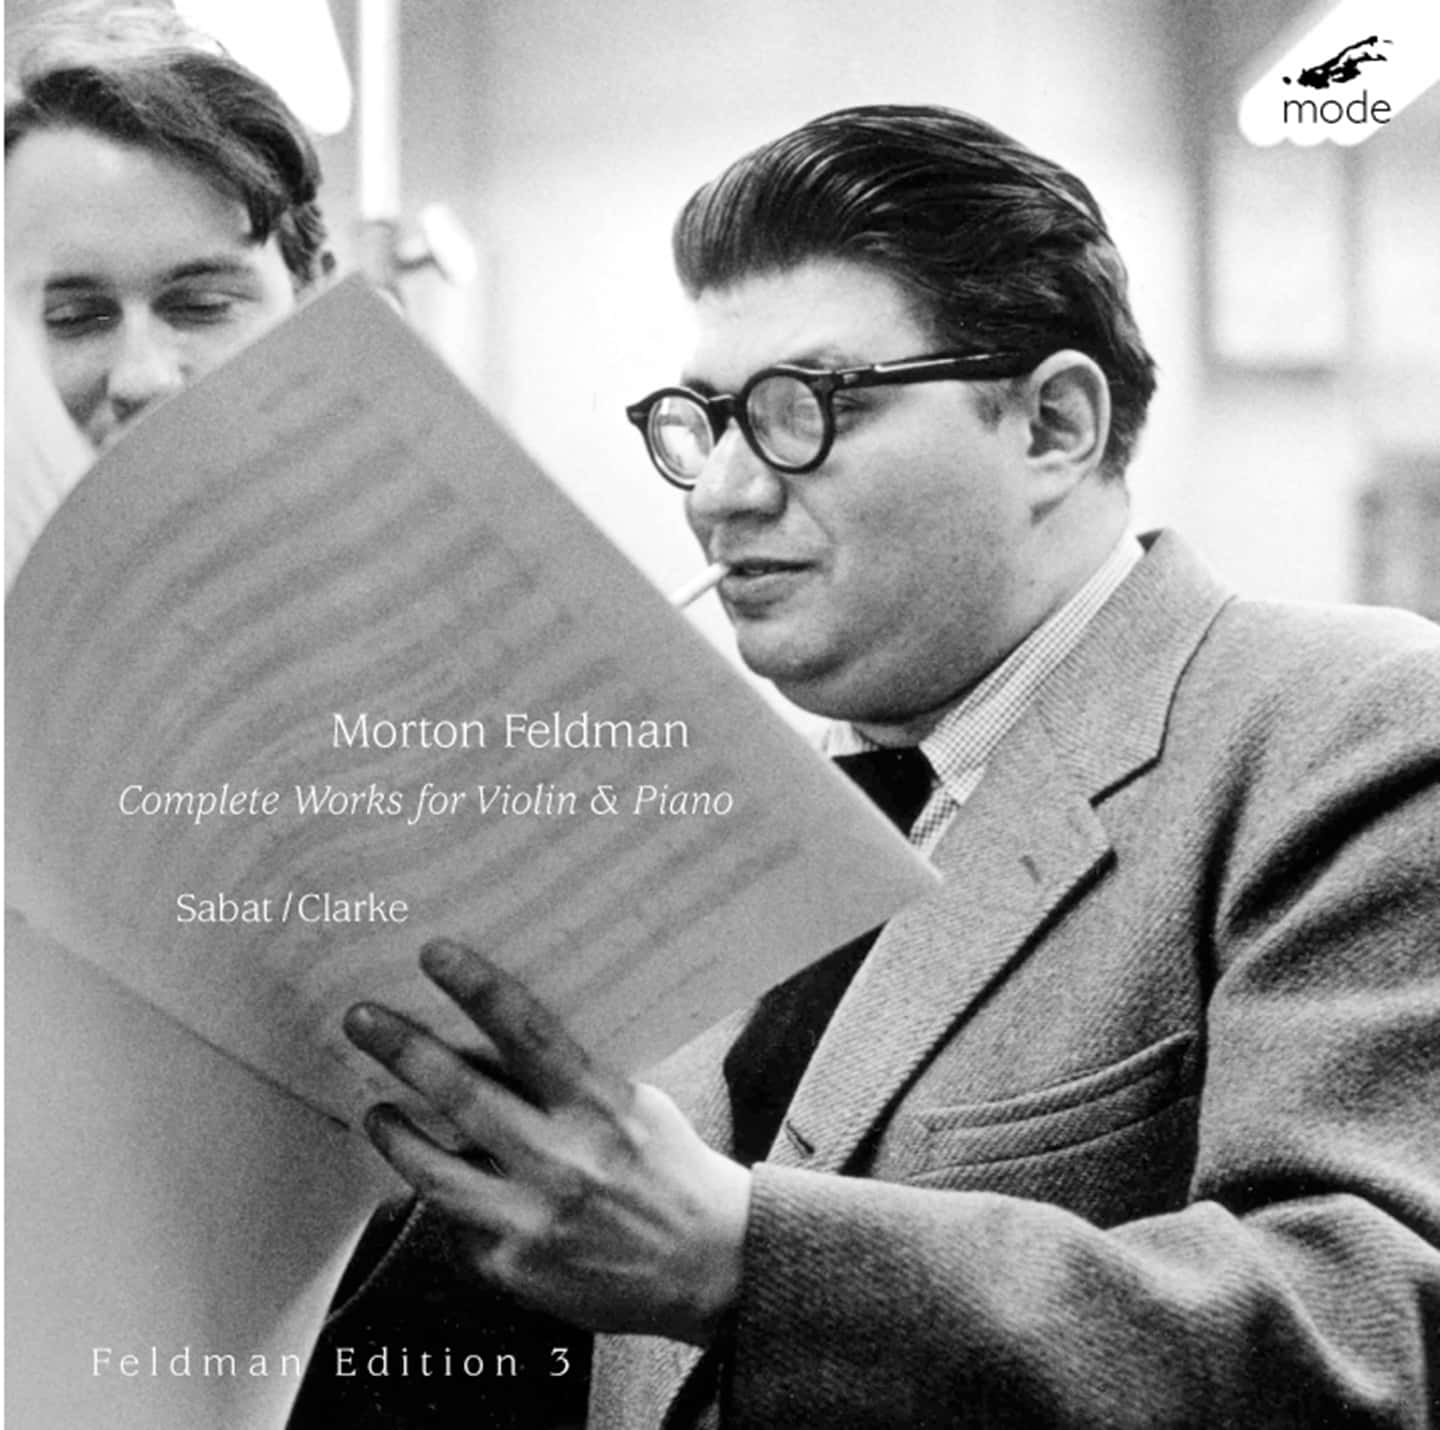 Feldman: Edition 3 – Complete Music for Violin & Piano